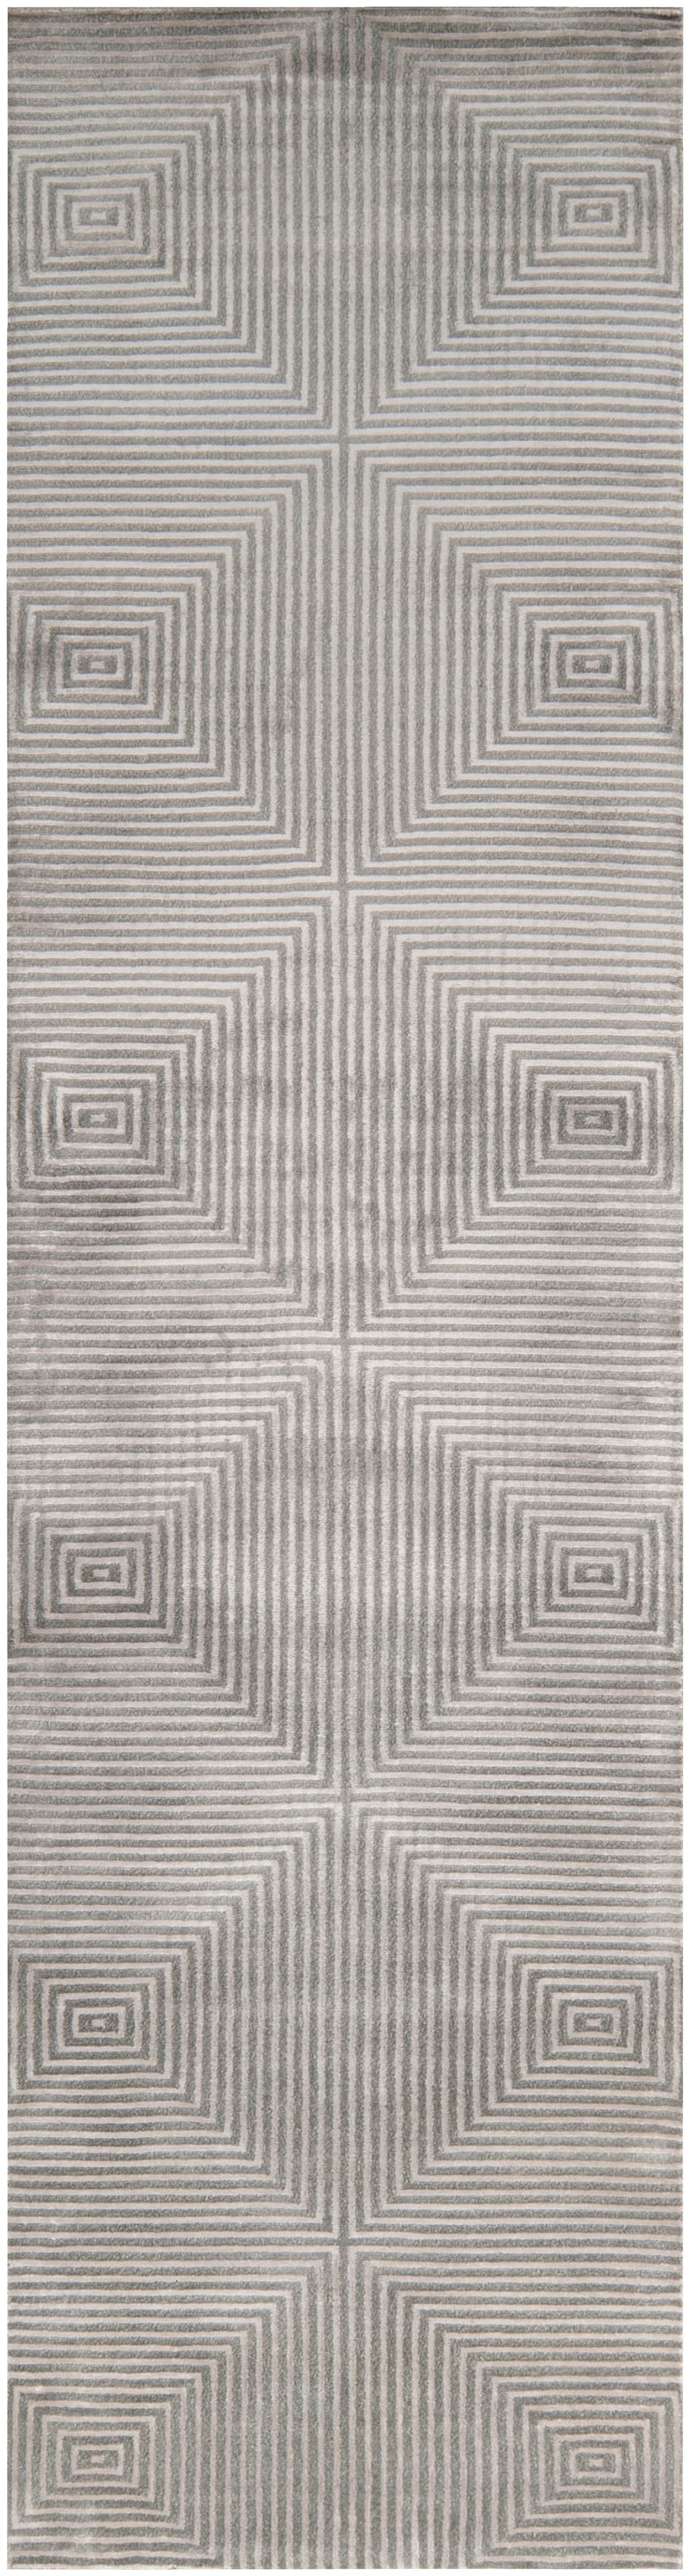 Luminous LMN-3005 2' x 3' Rug